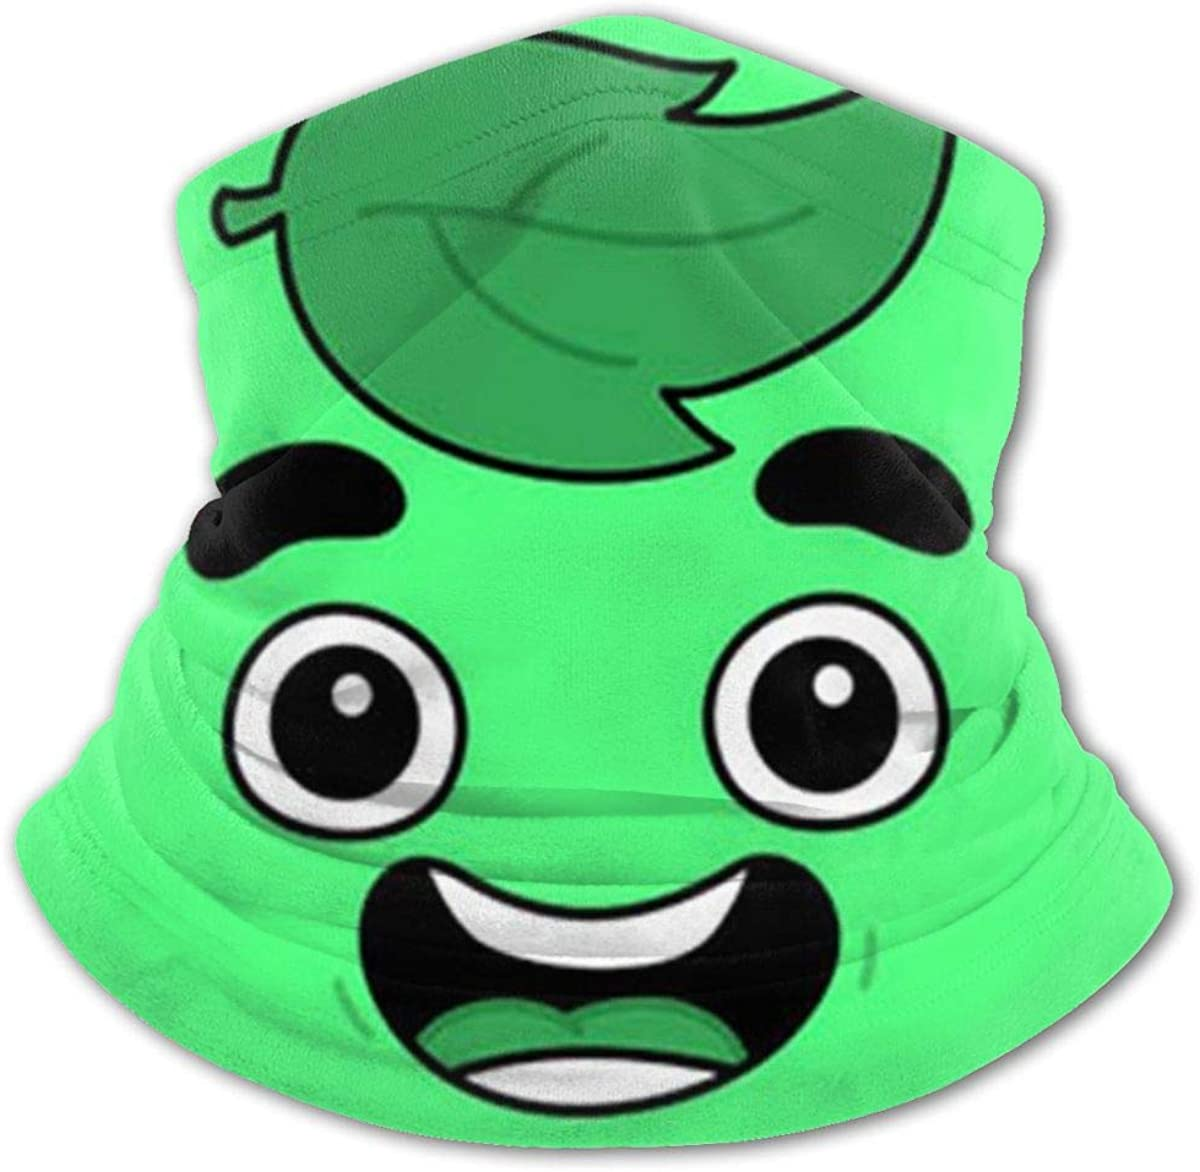 Cooling Neck Gaiters Face Cover for Boys Girls Outdoor - Scarf Guava Juice Bandana Black